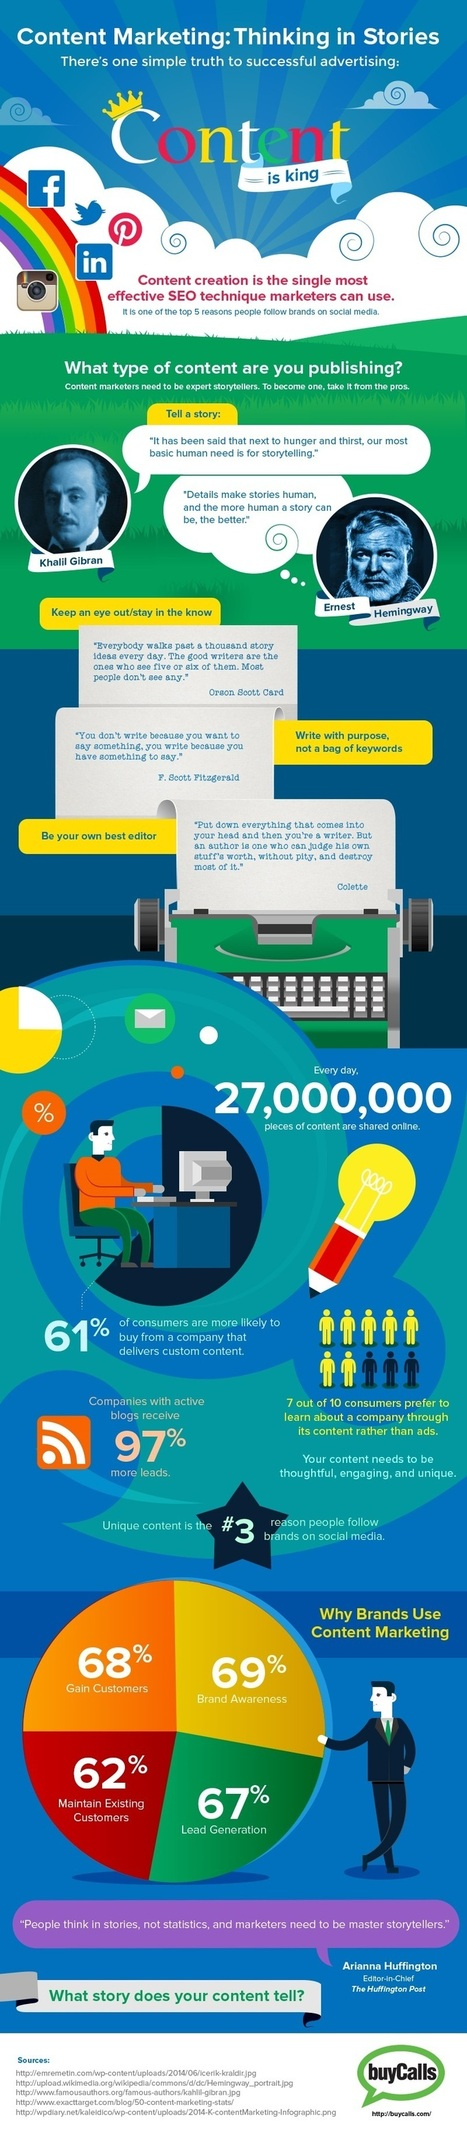 Content Marketing: Thinking in Stories [Infographic] | MarketingHits | Scoop.it